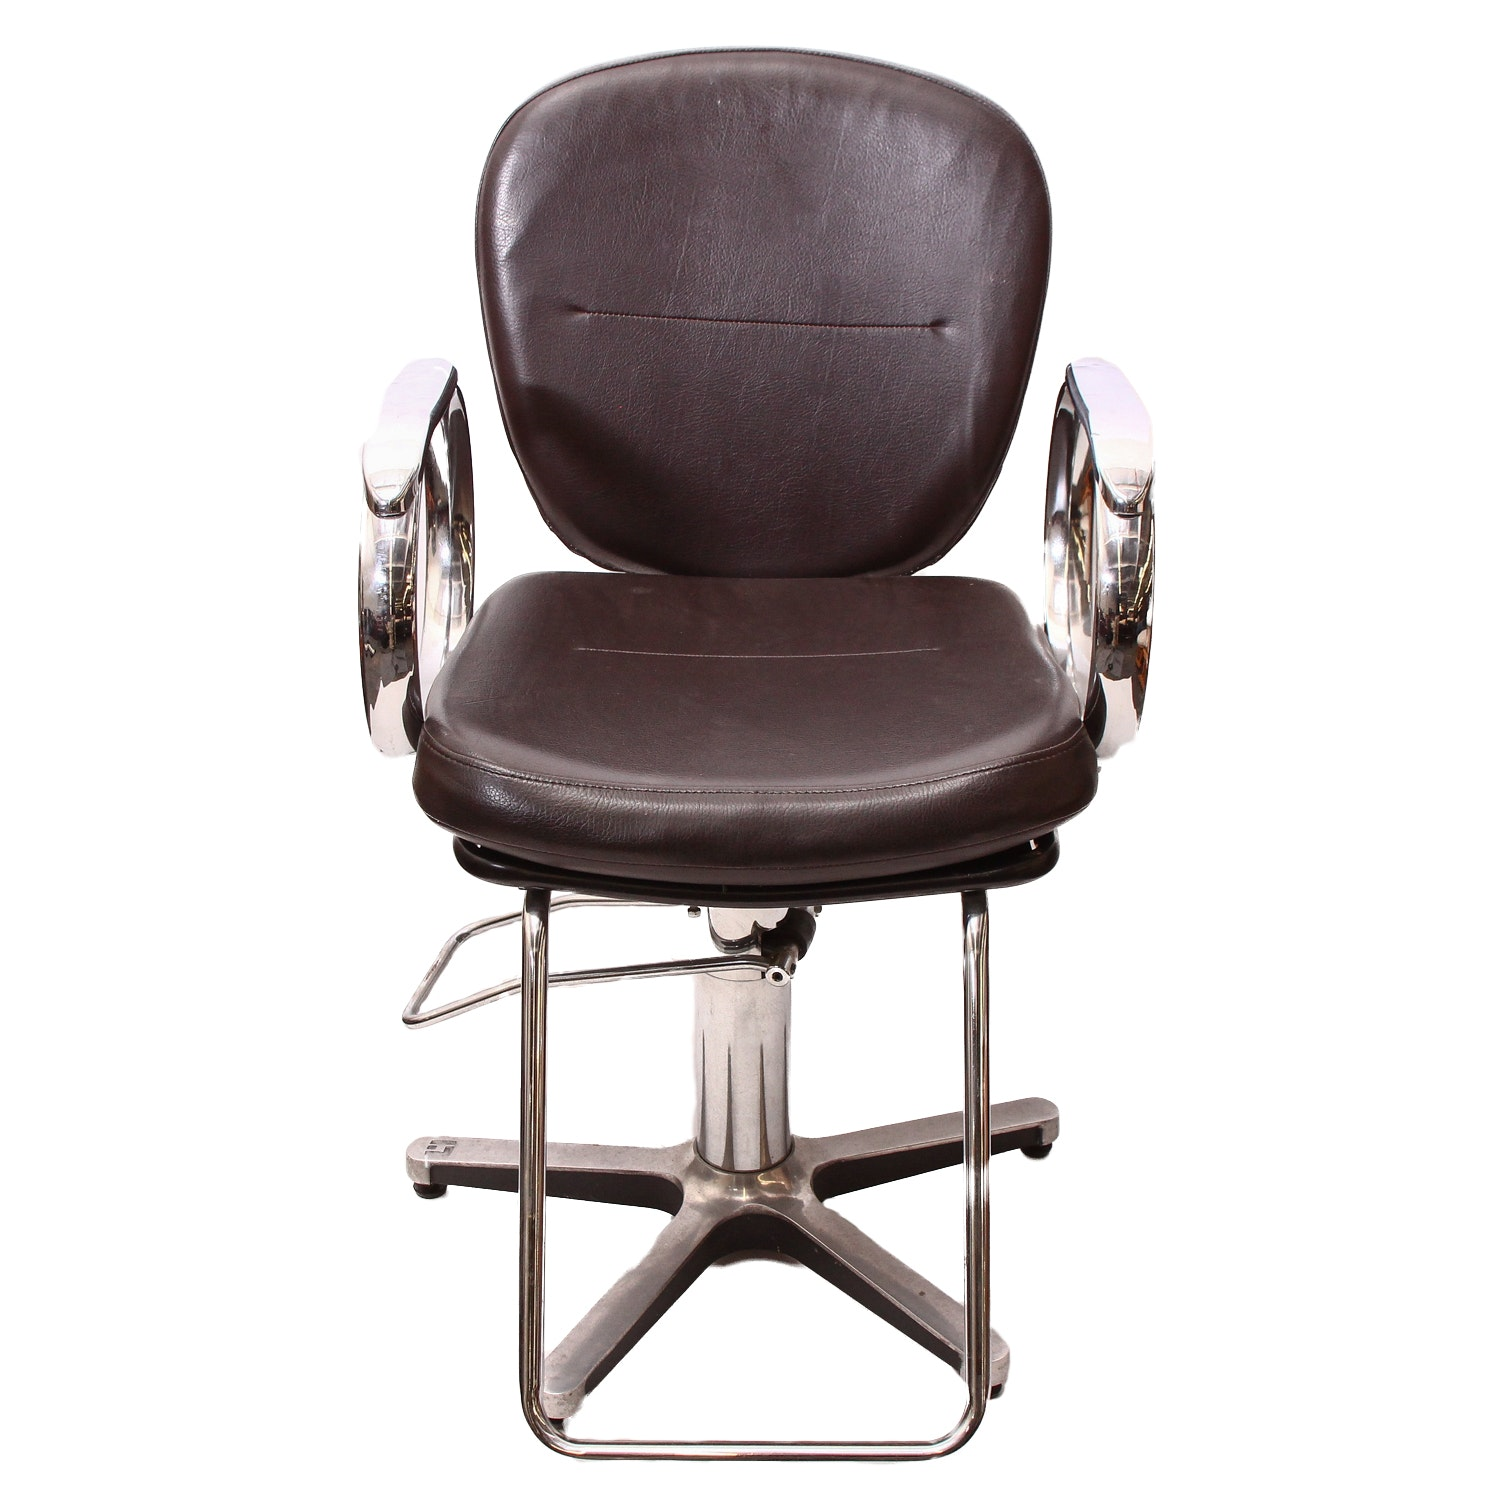 Brown Leather Salon Chair by Takara Belmont